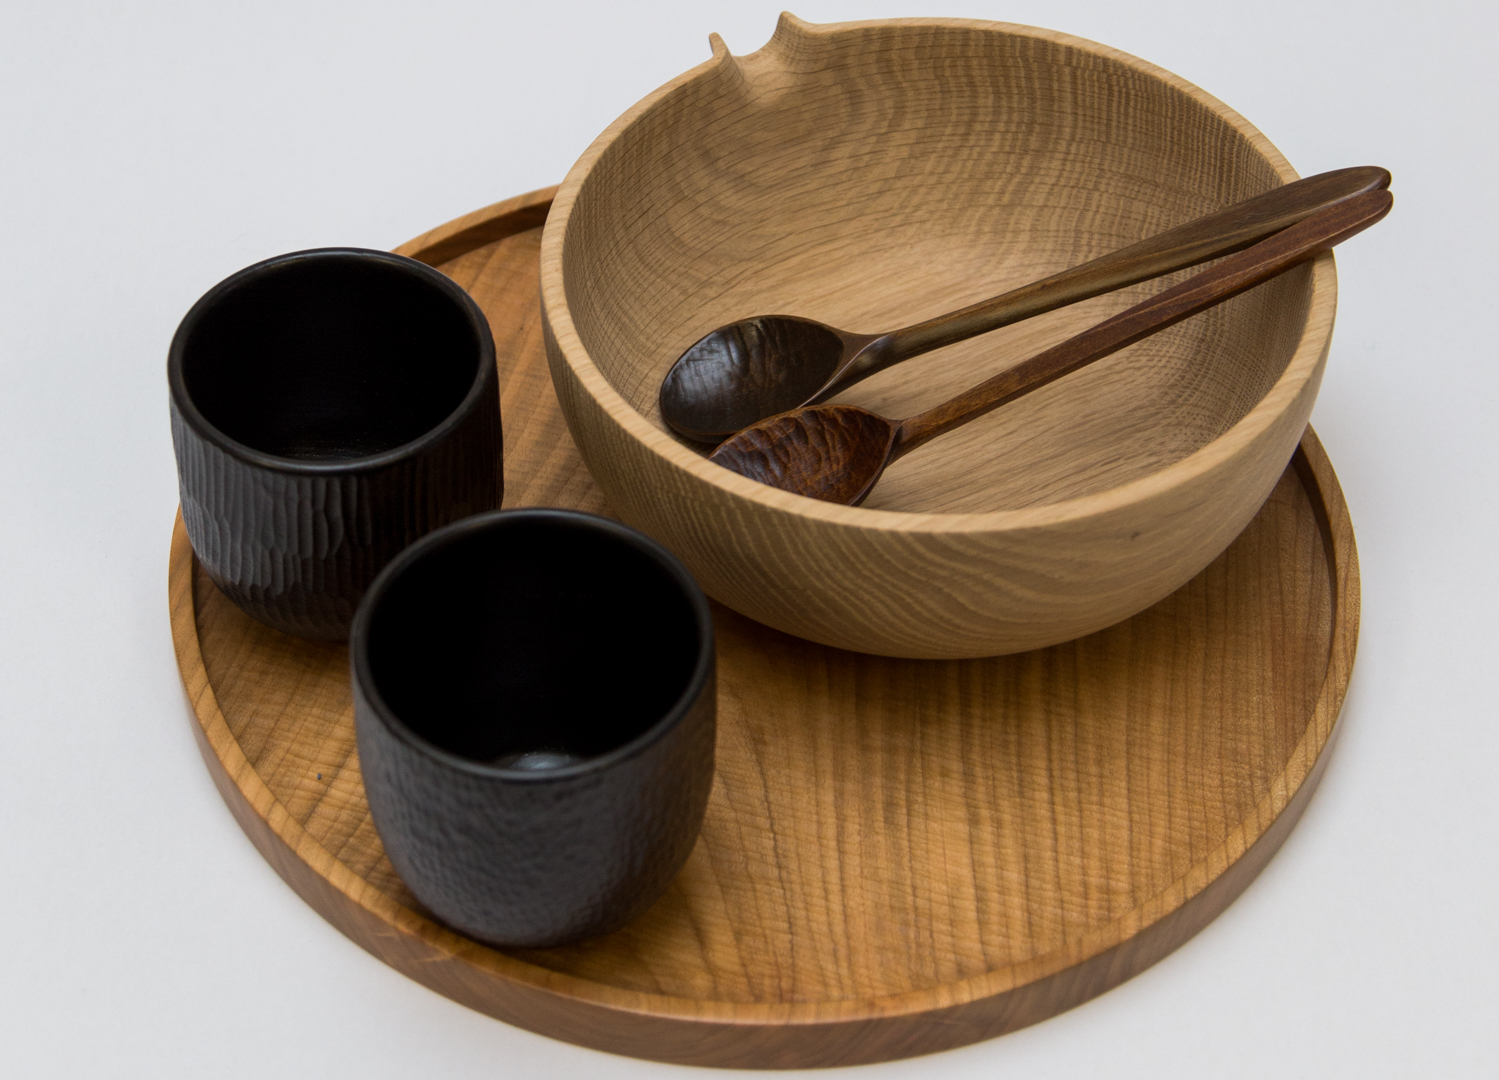 Takahashi McGil - Pouring Bowls - £75Hand-carved Spoons - £20 Urushi (Japanese Lacquered) Cups - £59Buy at Takahashi Mcgil's Cockington Court studio and visit their online shop https://www.takahashimcgil.com/shop